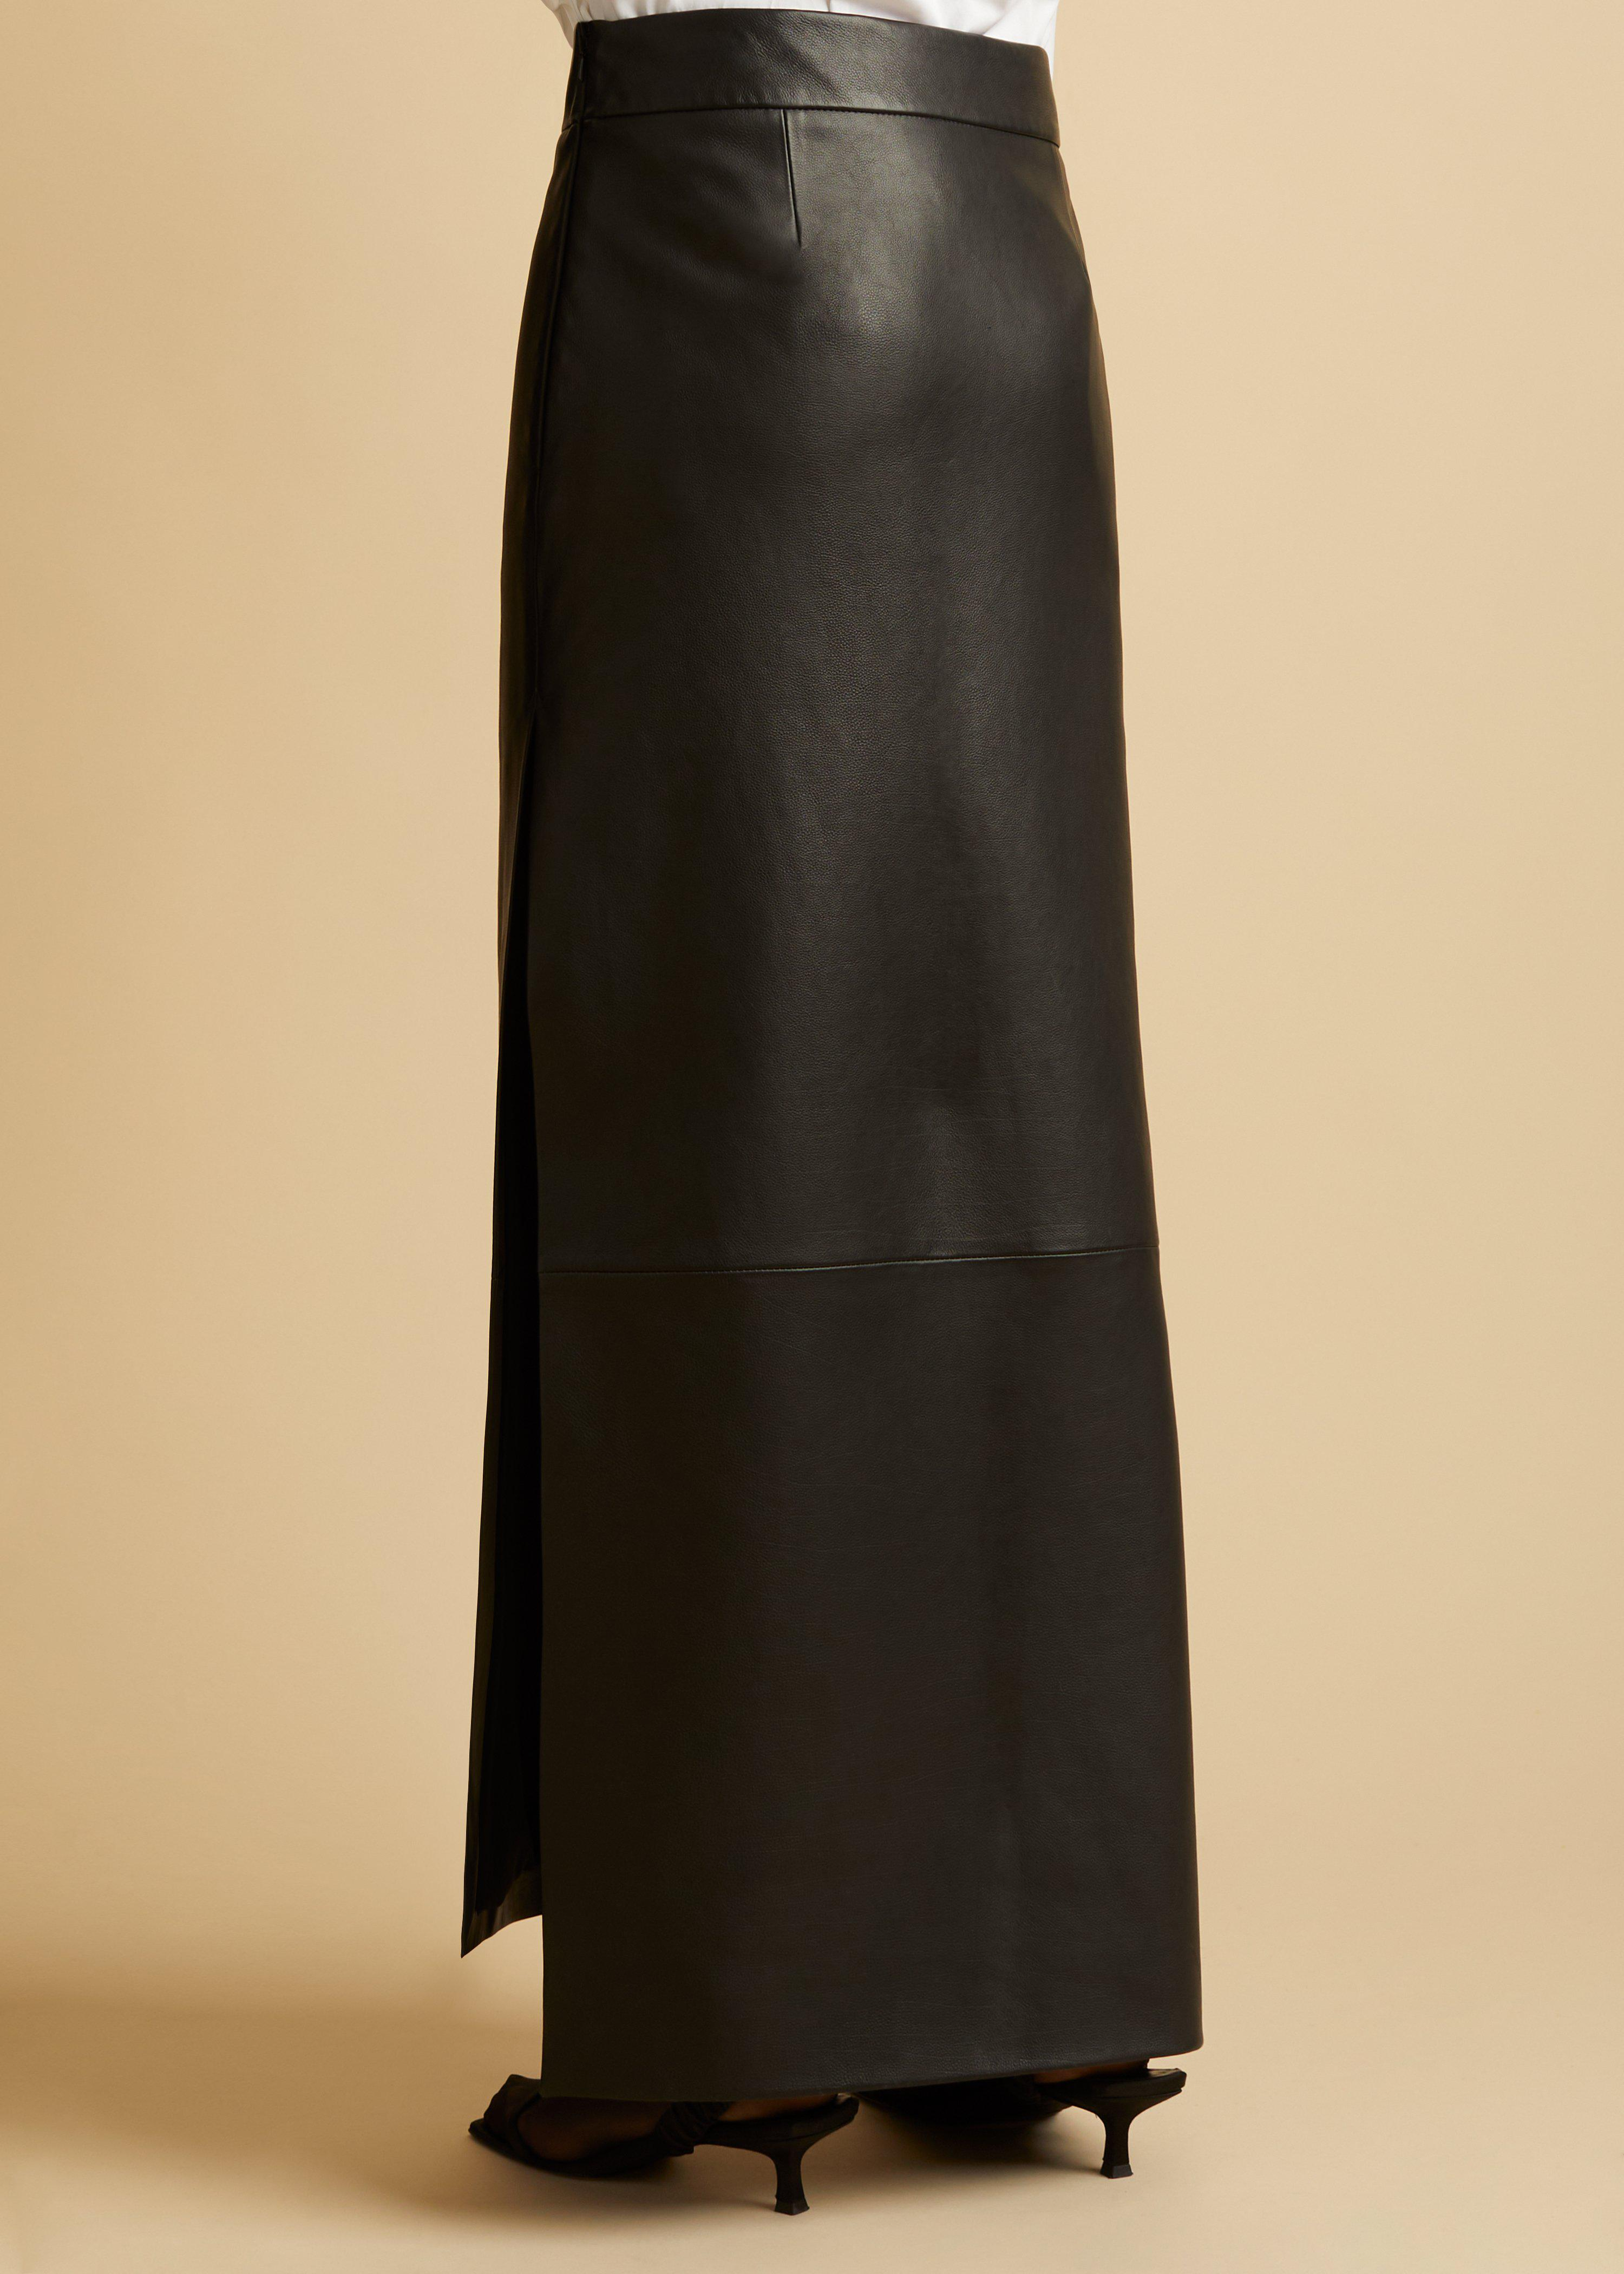 The Myla Skirt in Black Leather 2